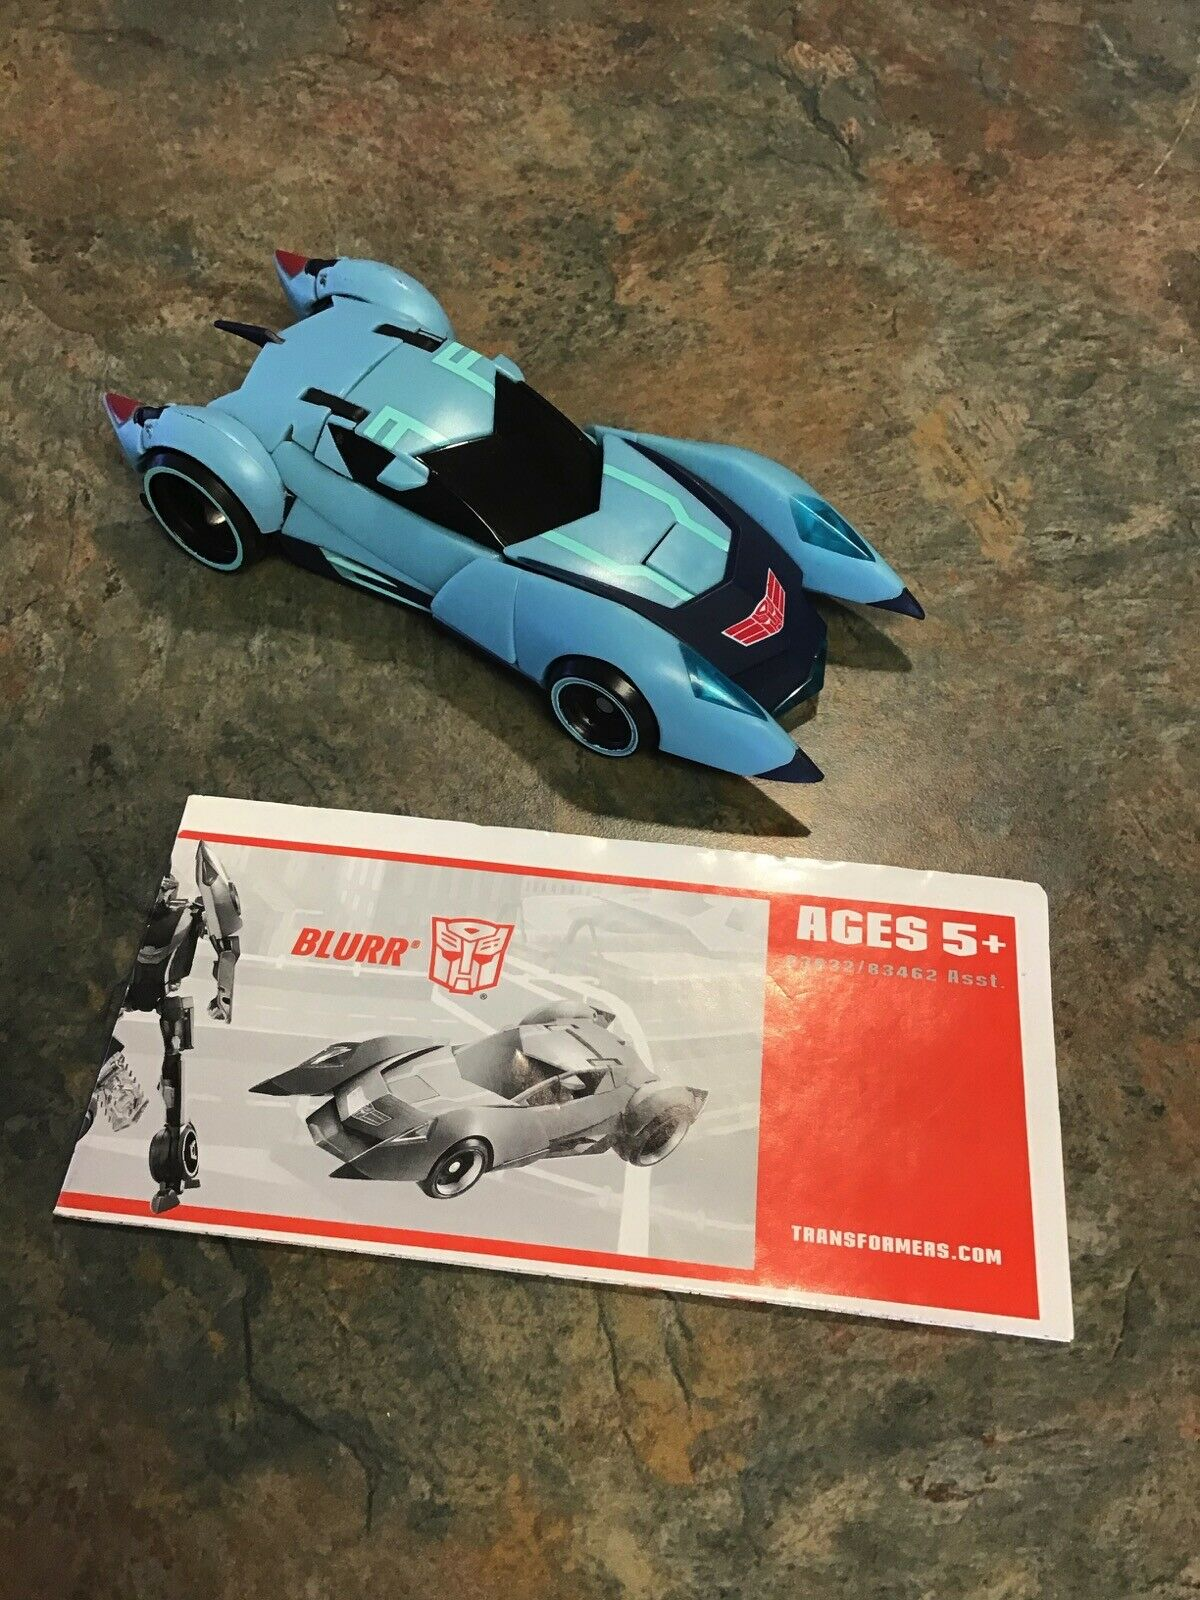 Hasbro Transfomers Animated 2008 Autobot bluerr Deluxe Class